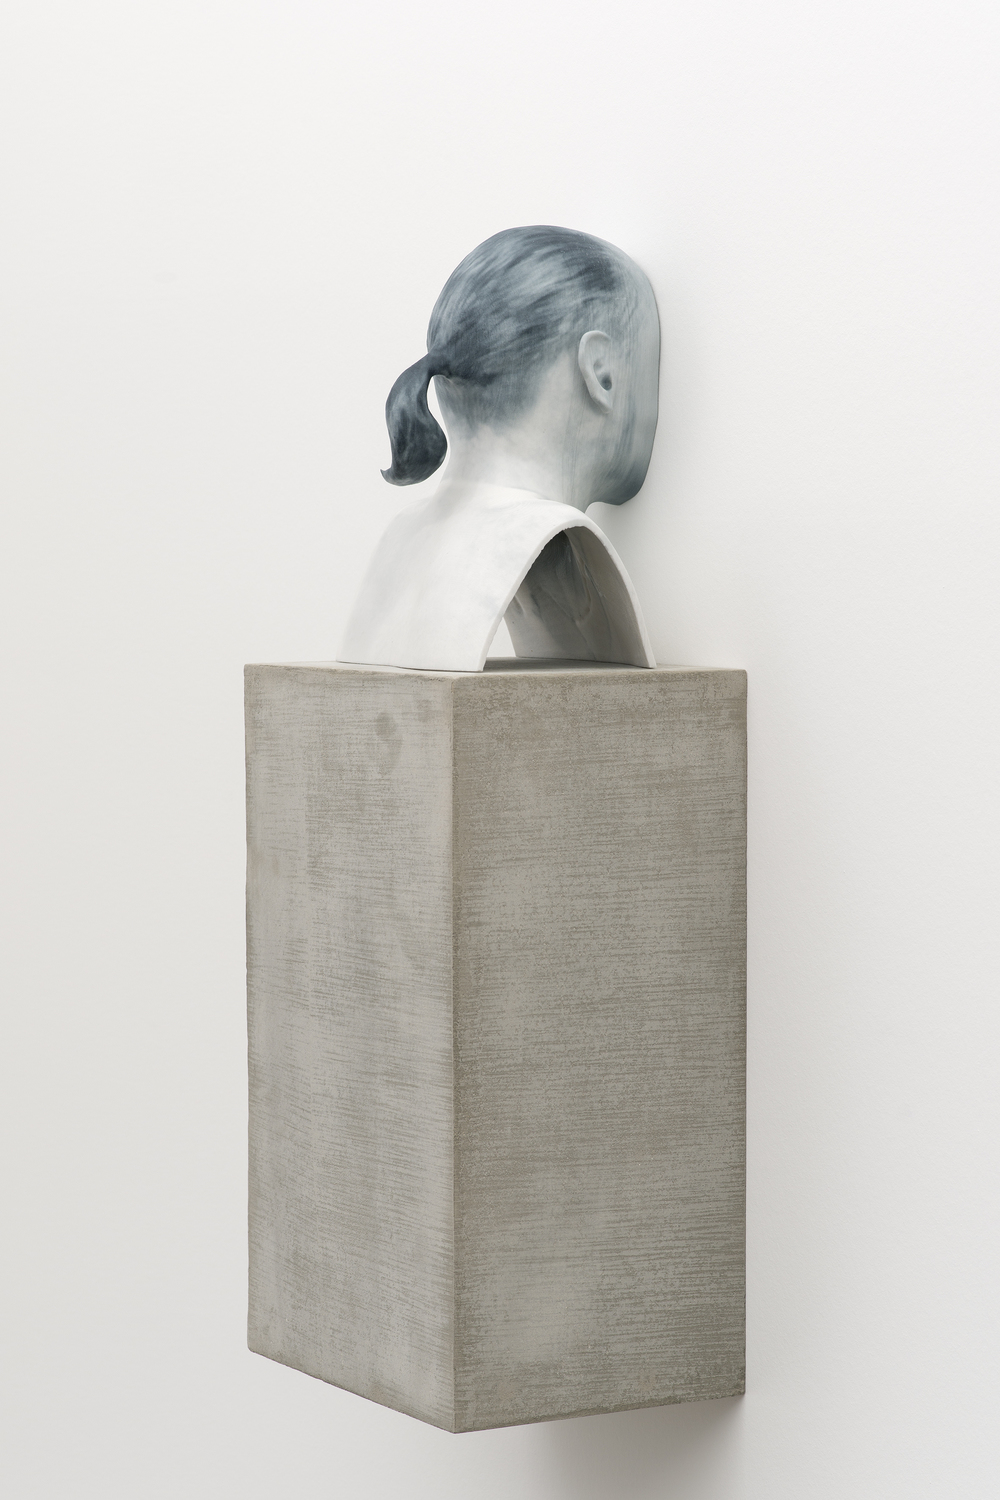 Man of Words (2), 2014 Pigmented plaster ZPrint, concrete 32.25 x 12 x 9 inches